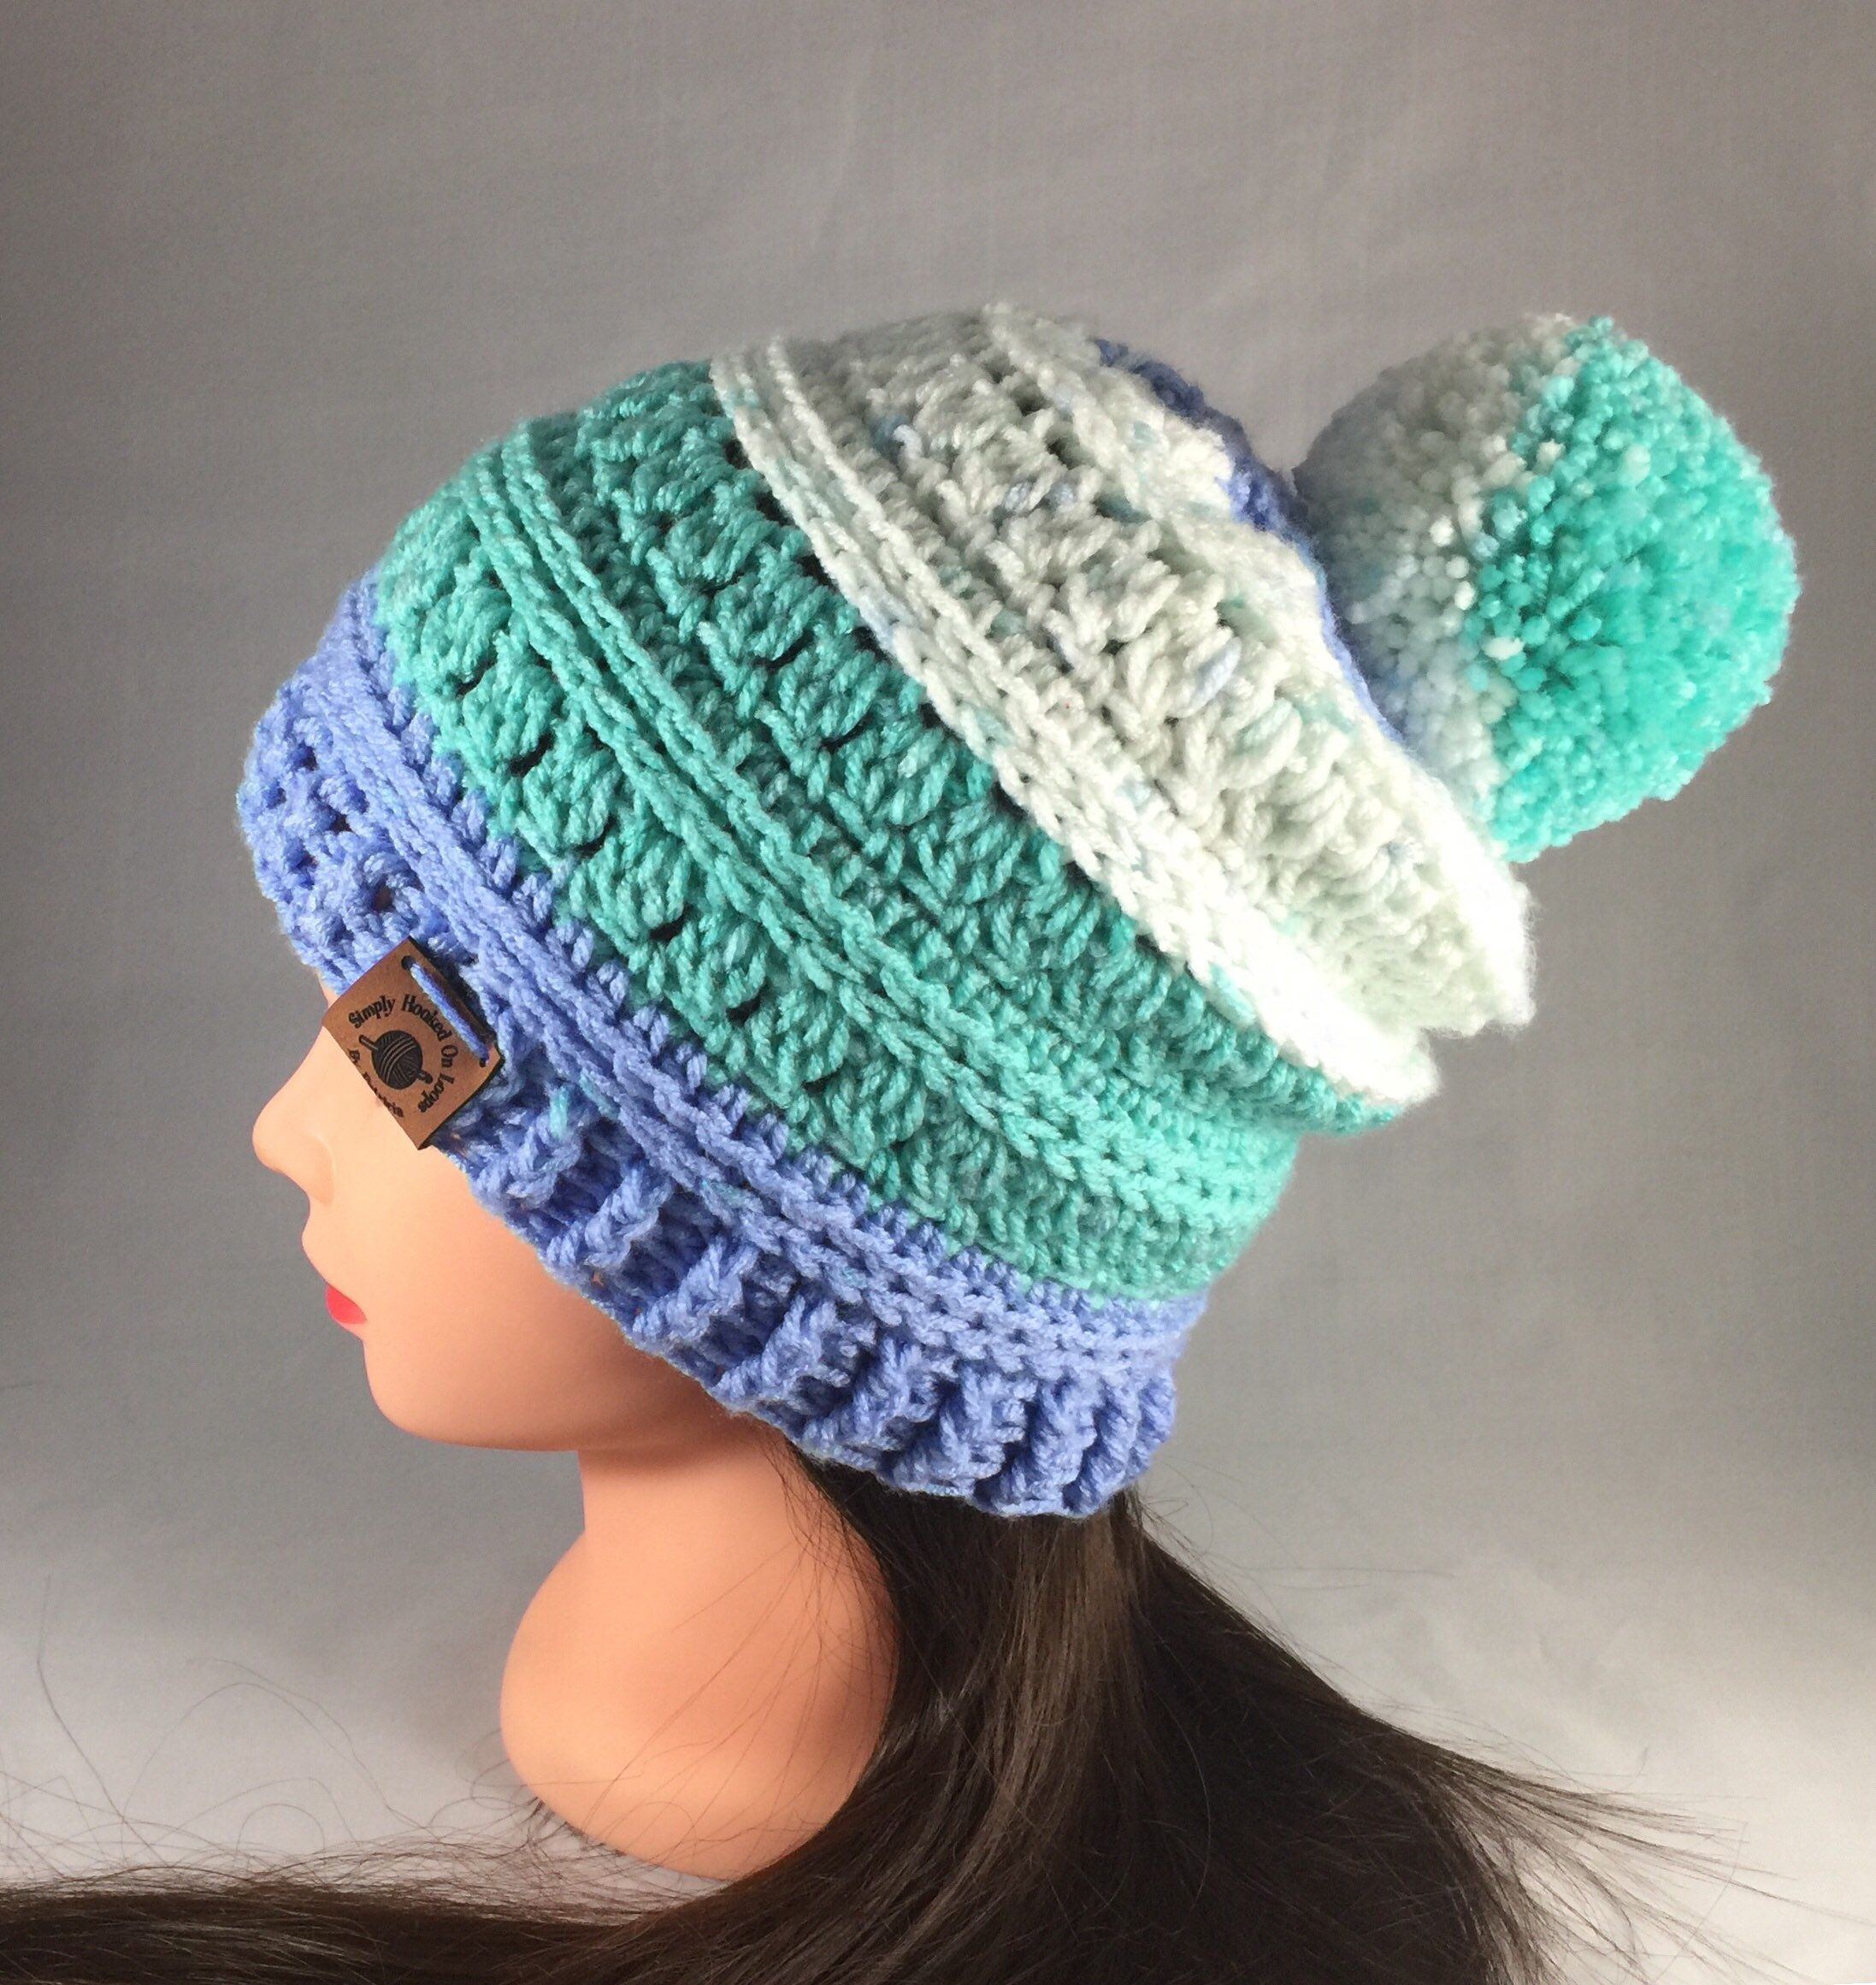 a903be56900 Excited to share this item from my  etsy shop  Blue Turquoise and White  Fall Winter Pom Pom Hat Beanie  accessories  hat  handmade  white   turquoise  green ...